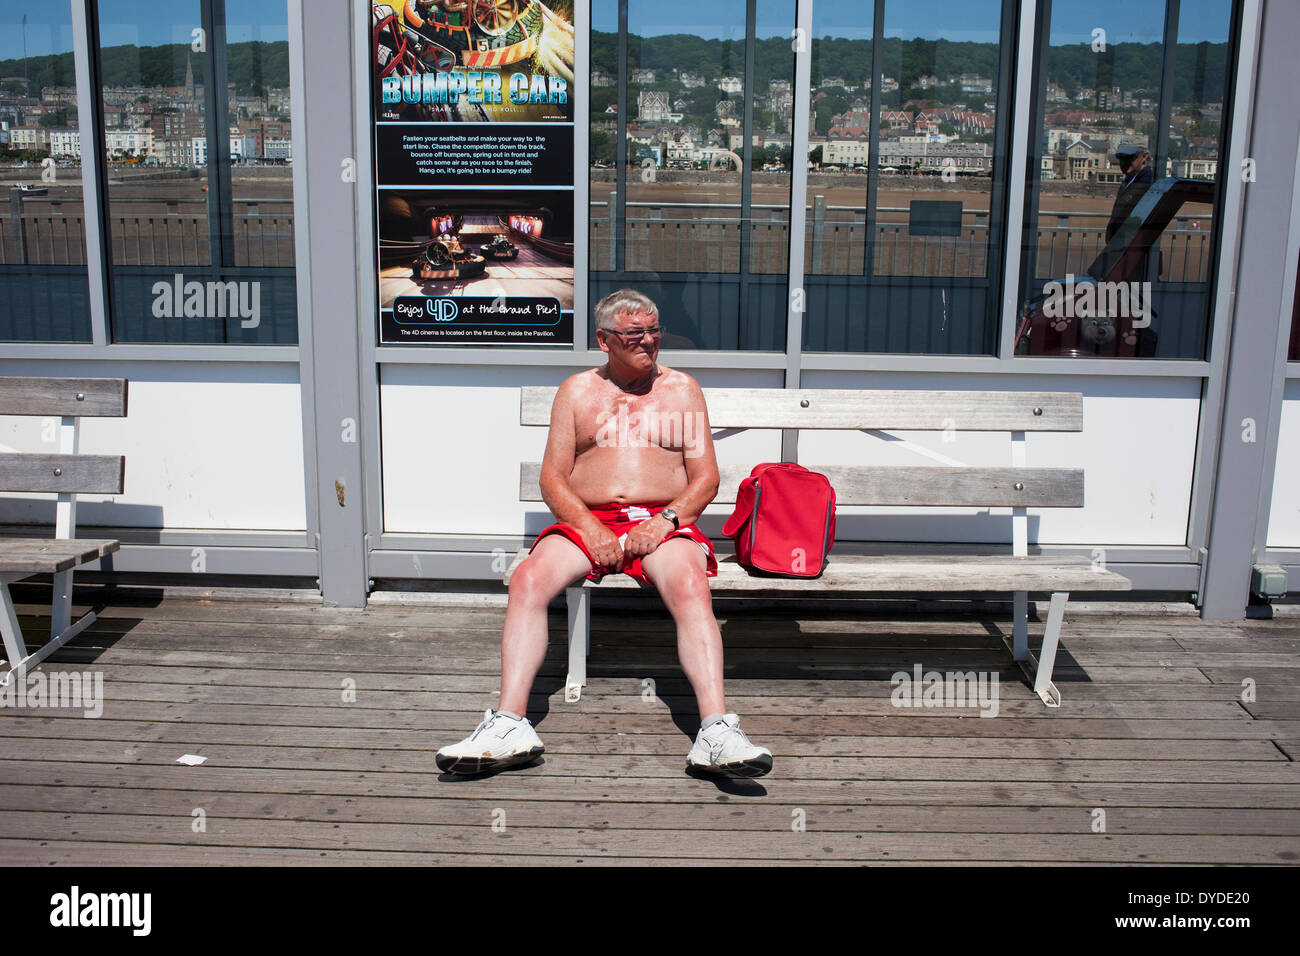 Man with a red short and red bag on Weston Super Mare pier. - Stock Image